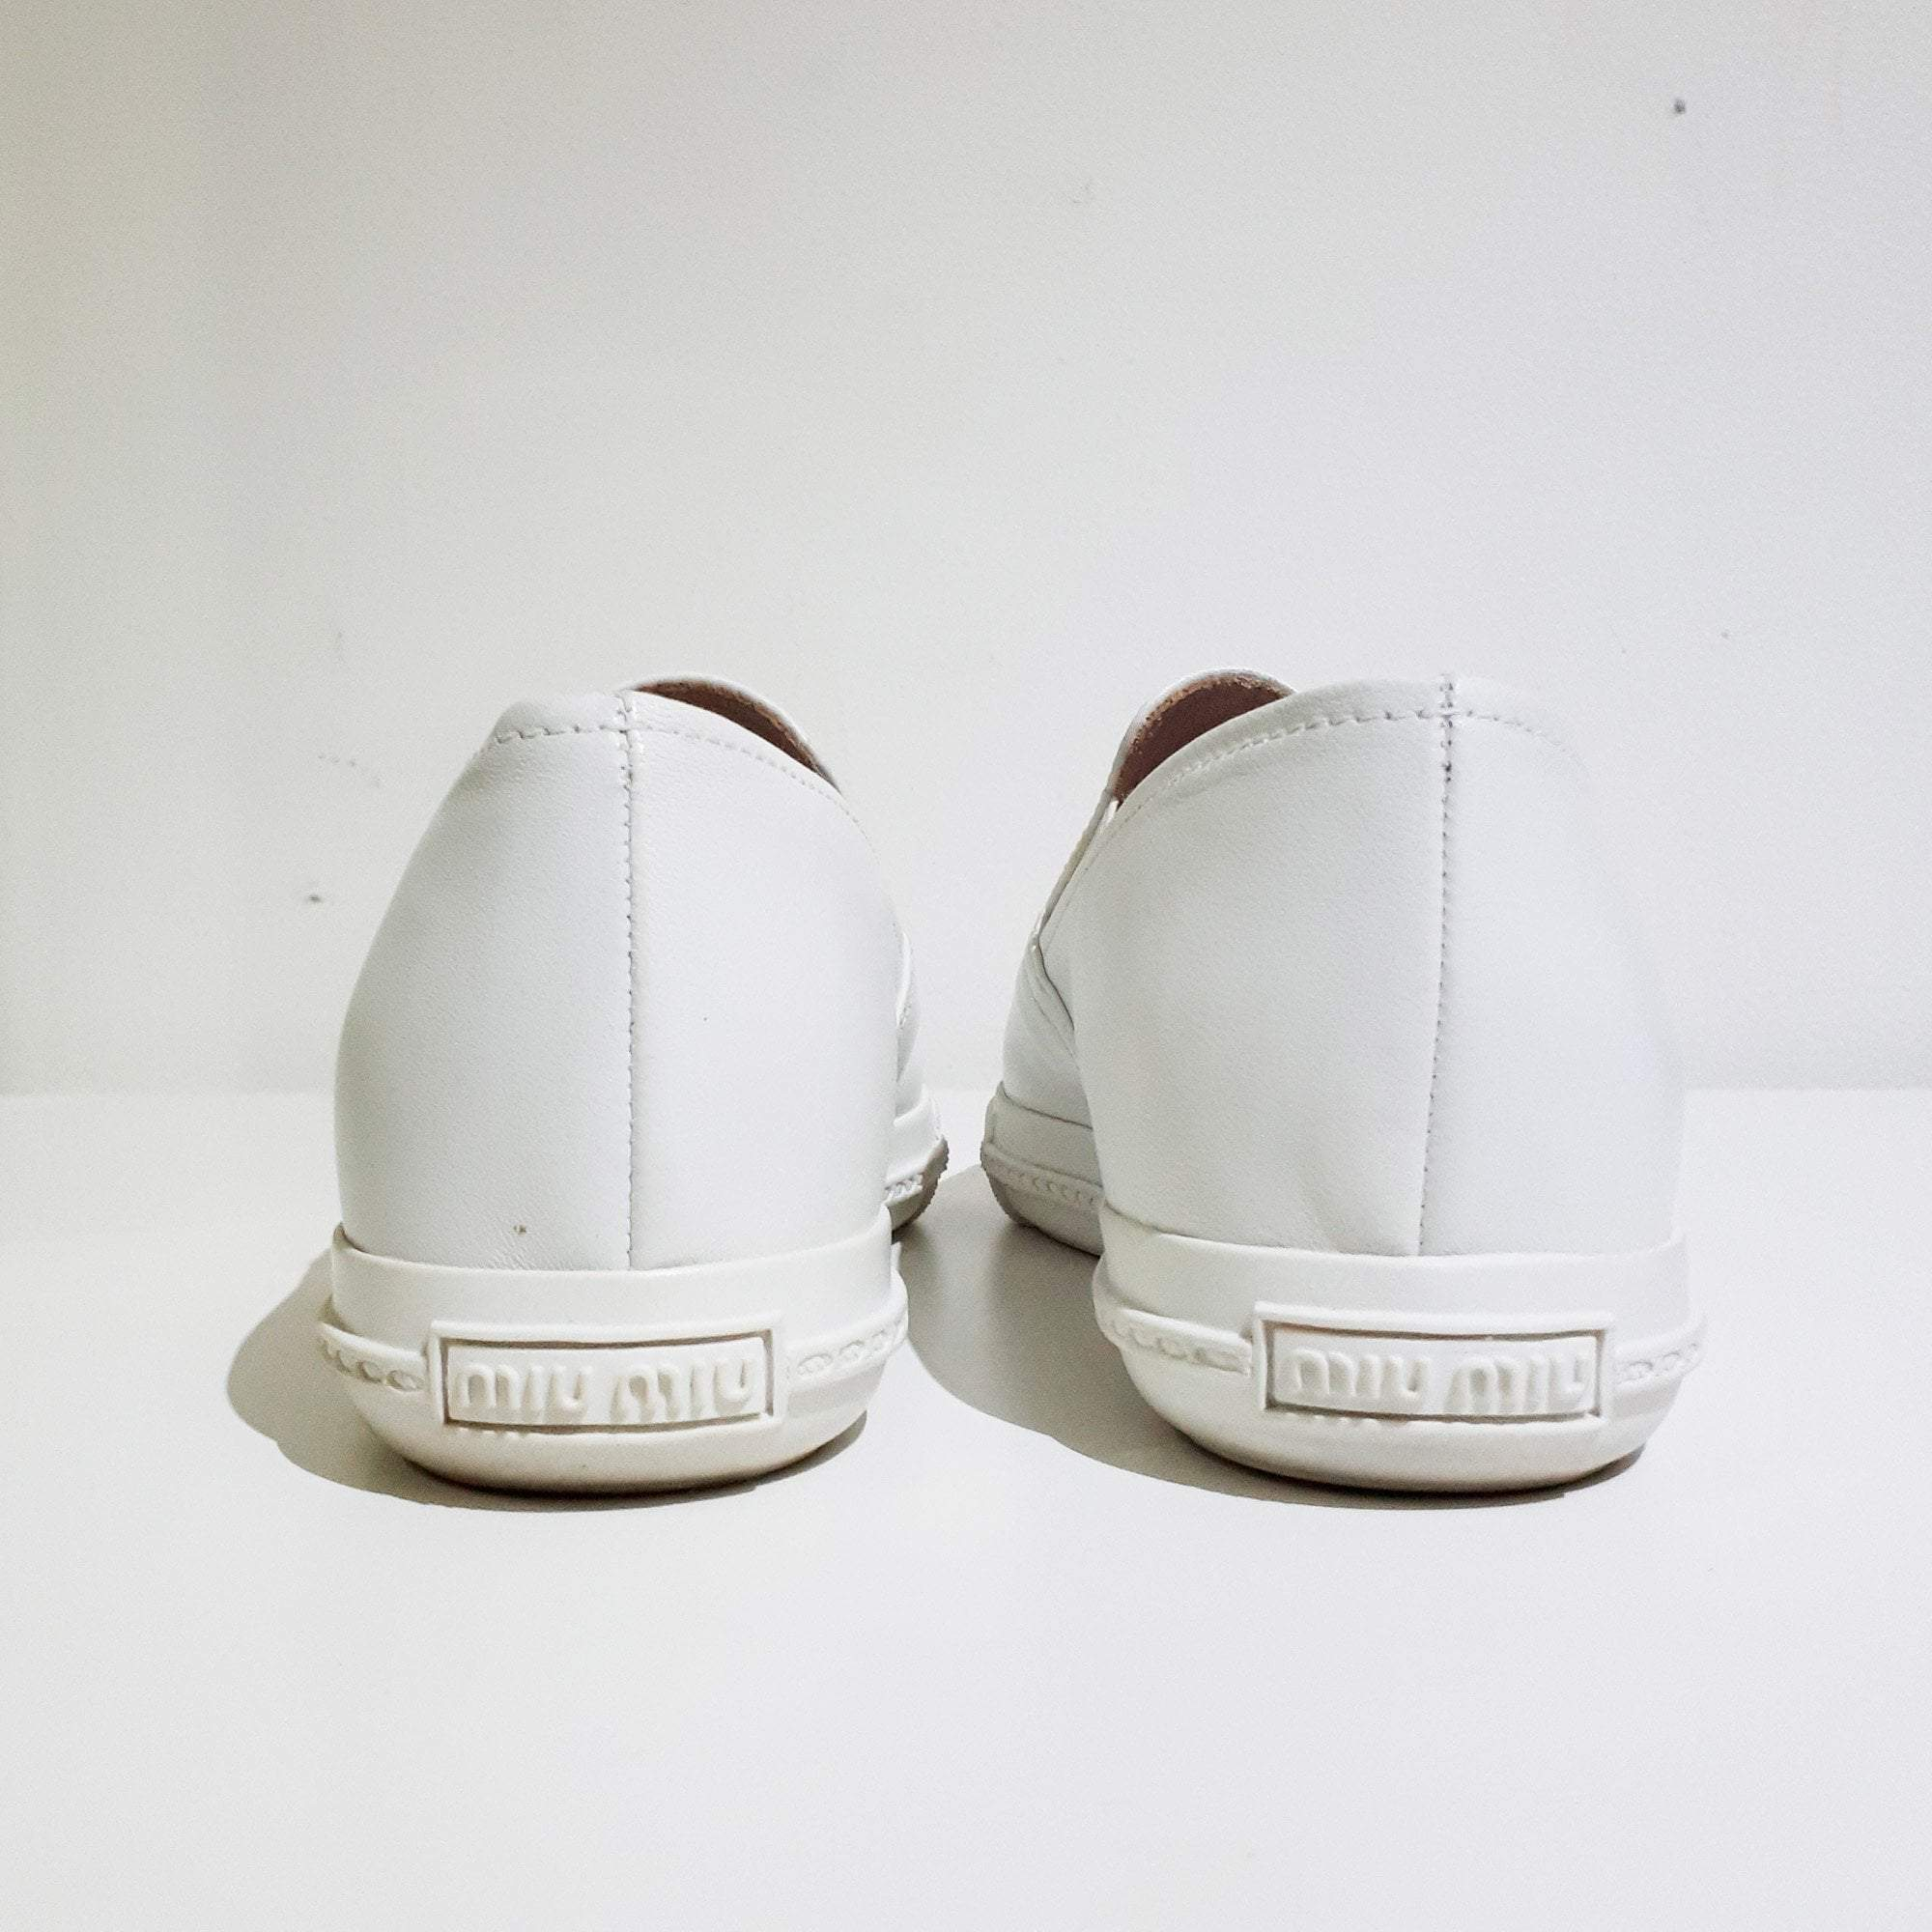 Miu Miu White Leather Metal Cap-Toe Shoes